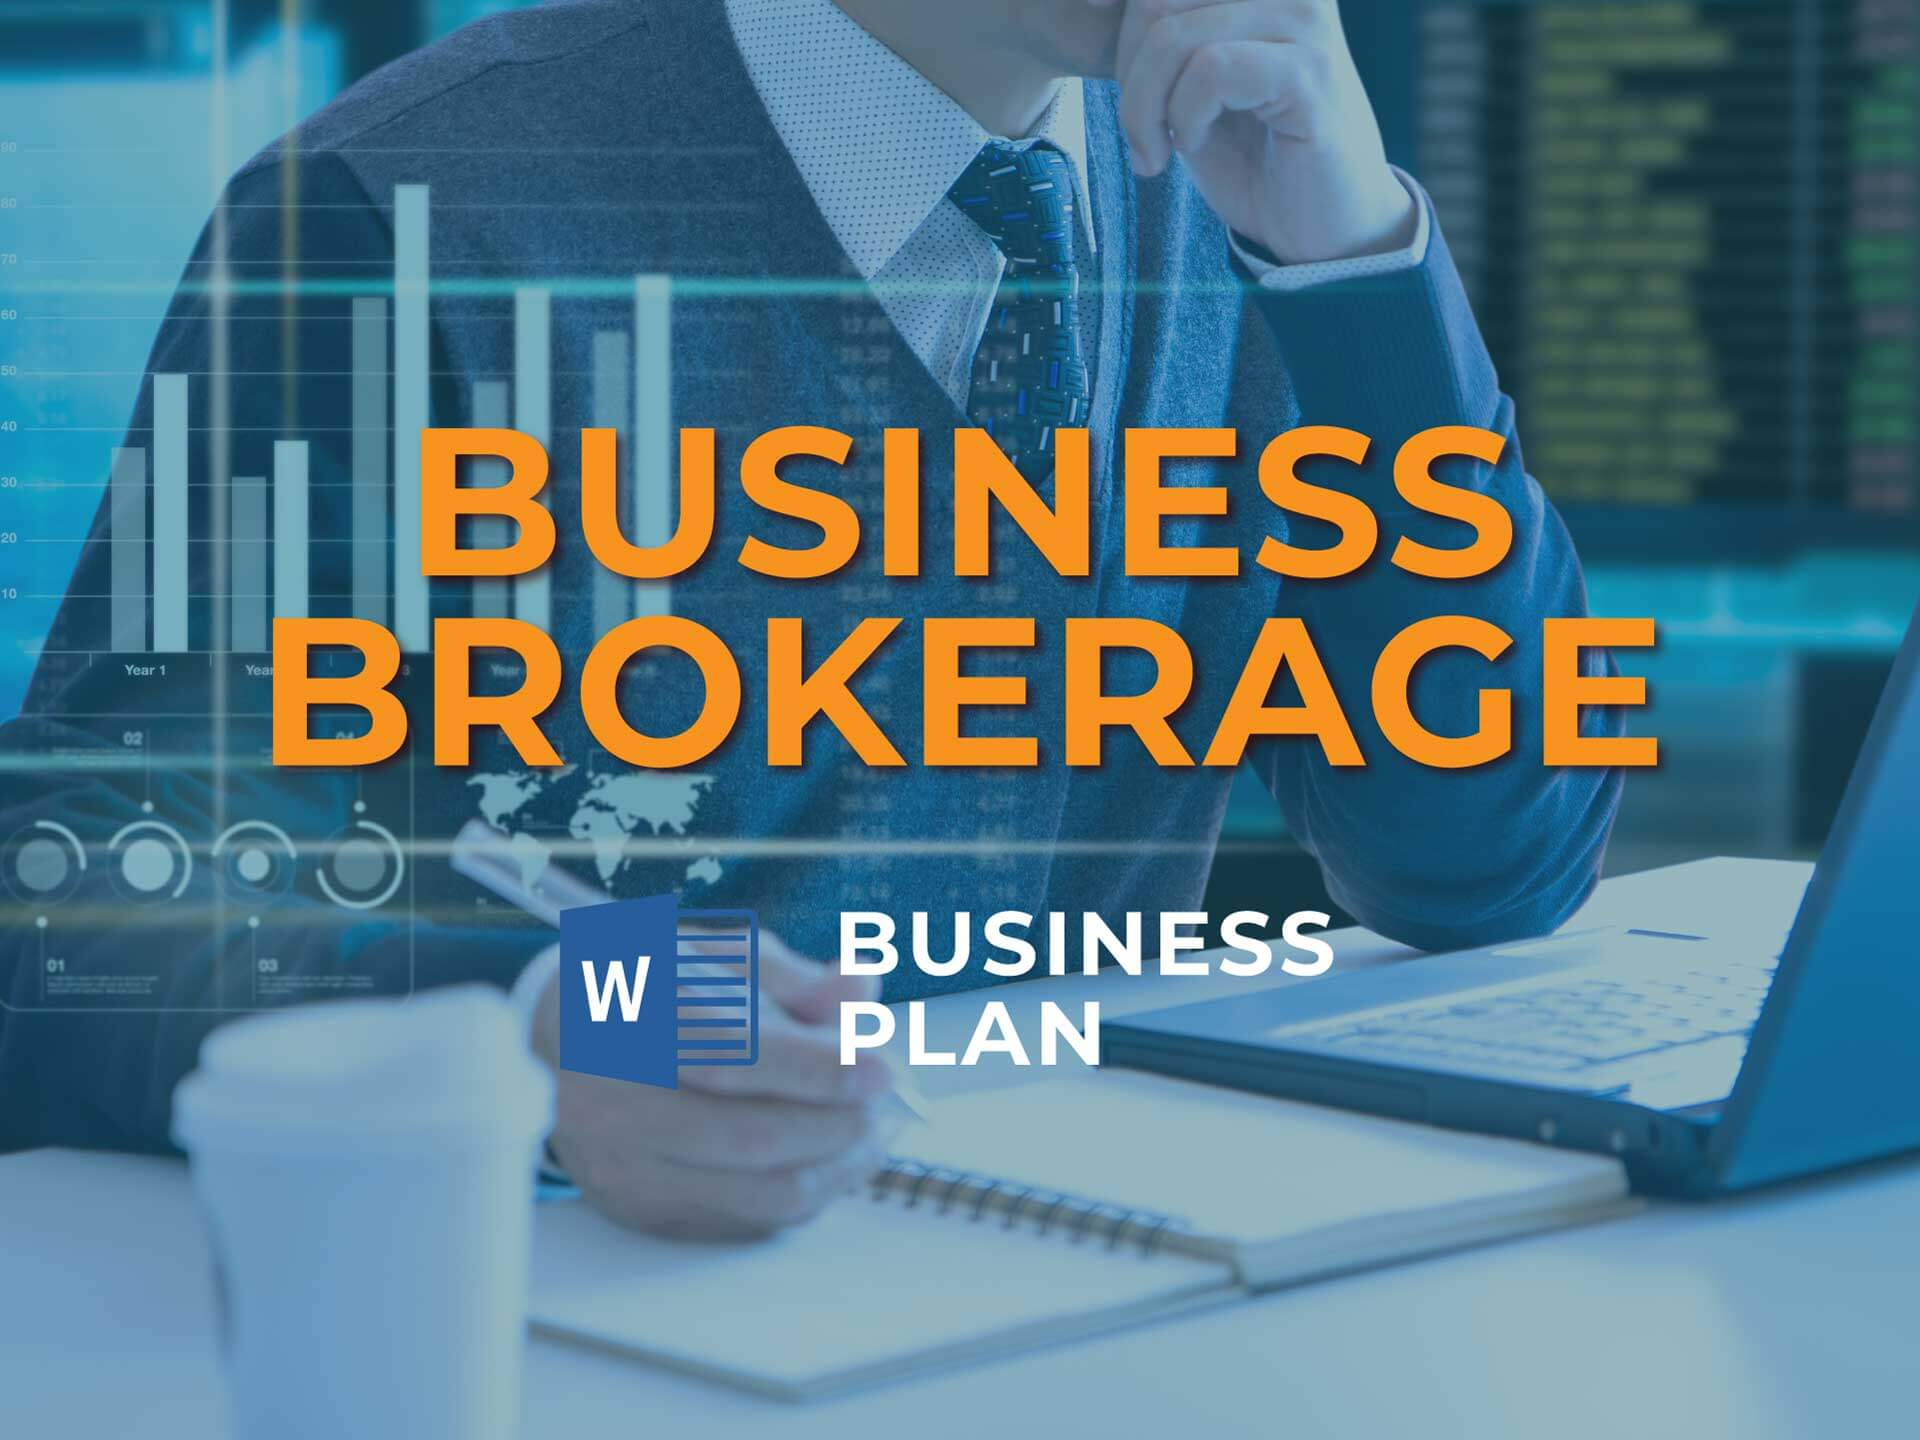 Business Brokerage